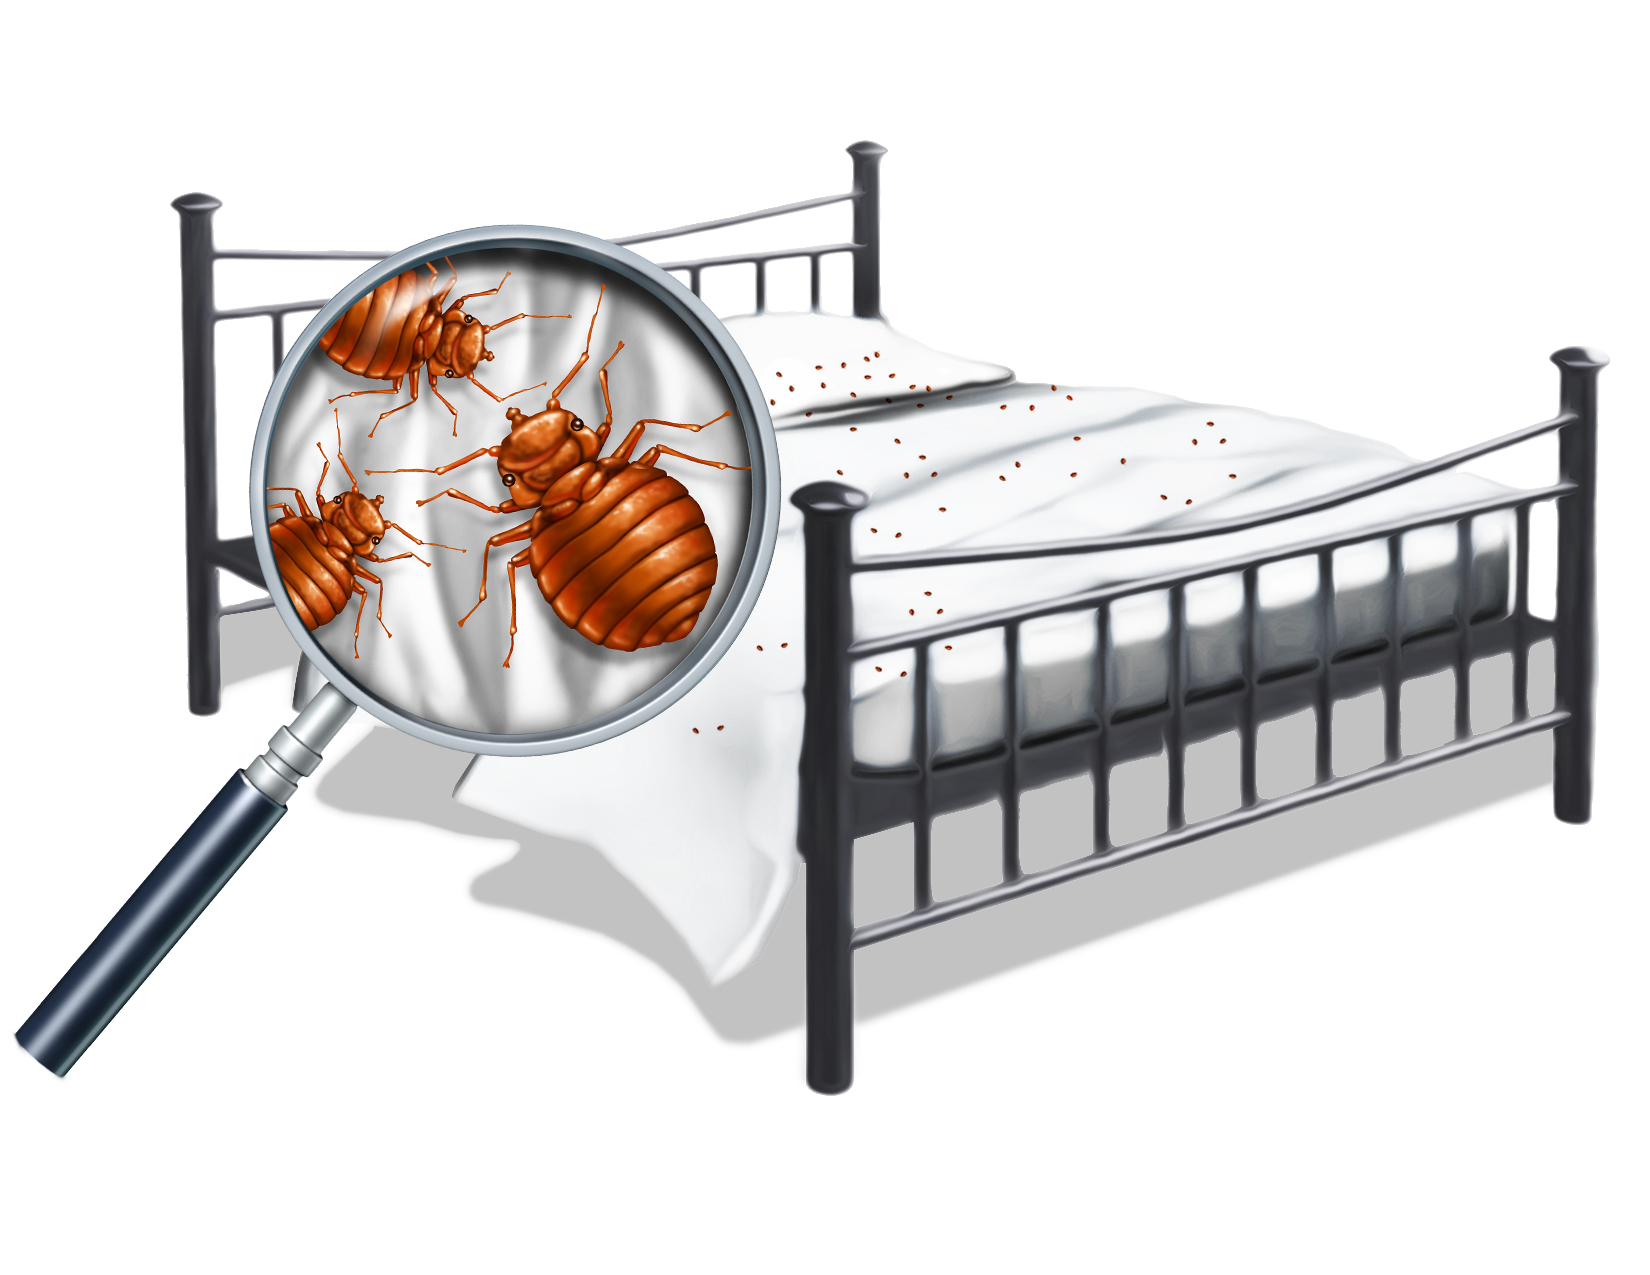 Bed Bugs at Home!